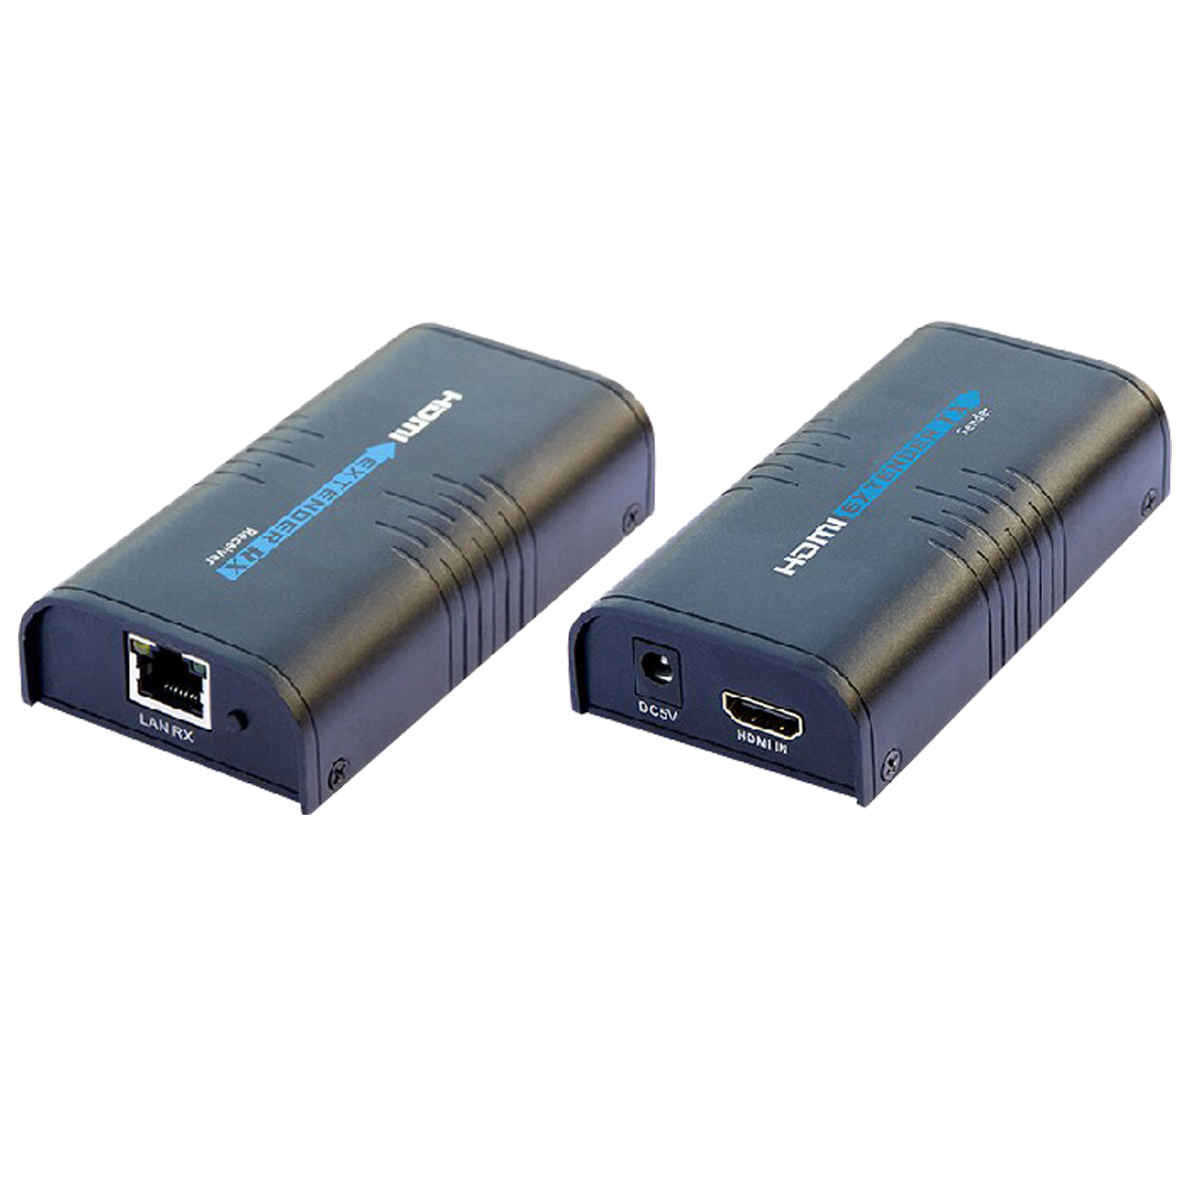 Long strong lkv373 hdmi extender single cable hdmi extender ip extender to extend 100 m